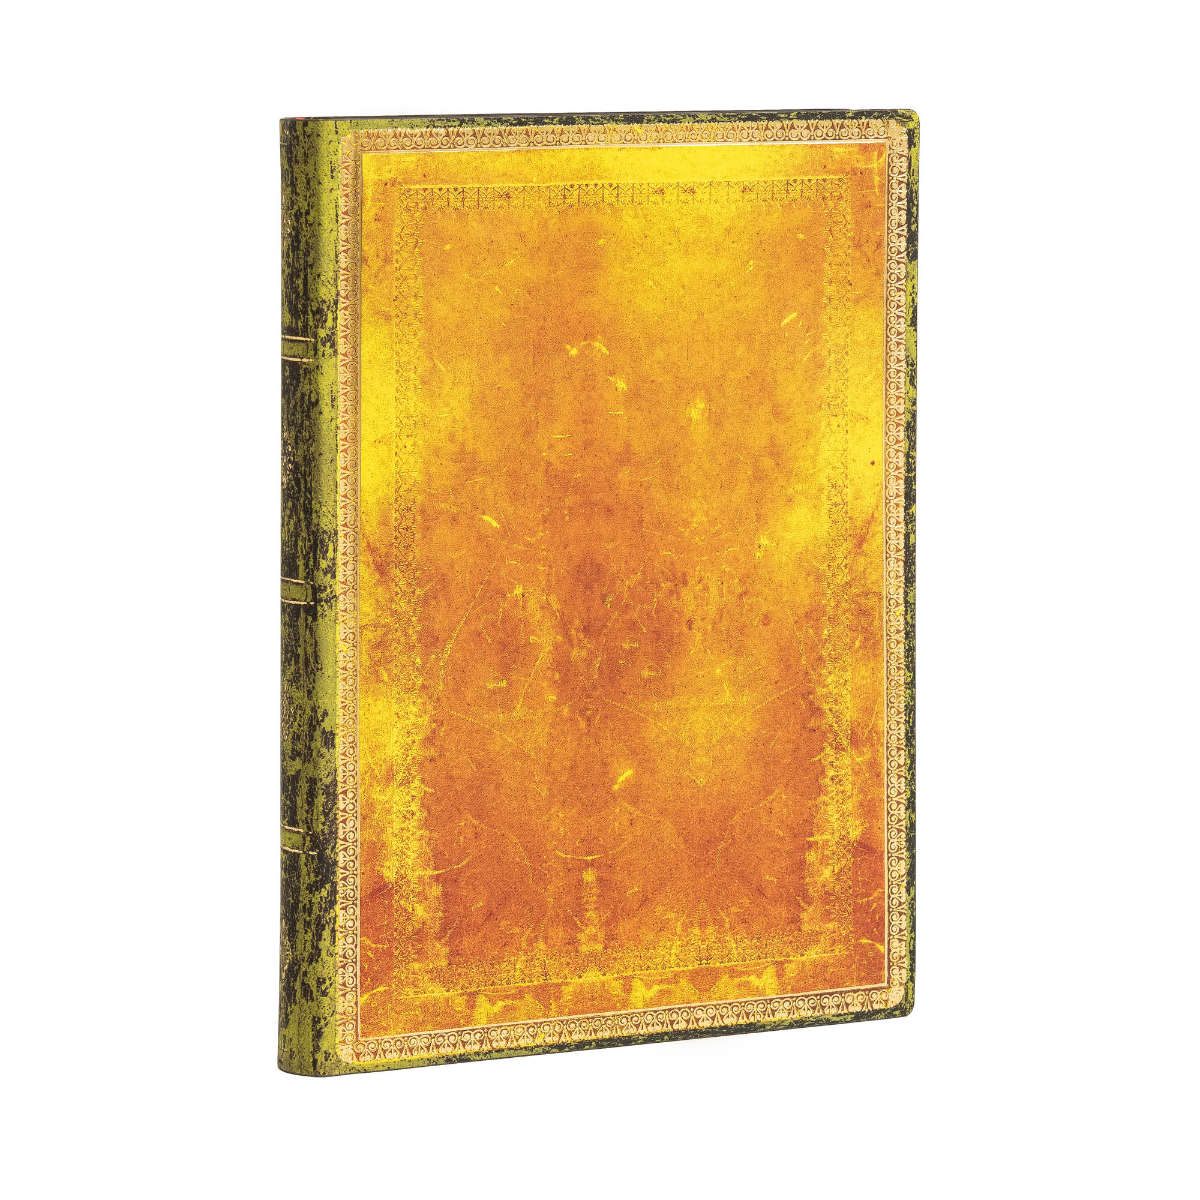 Paperblanks Flexis Old Leather Ochre Midi 5x7 Inch, 240 Lined